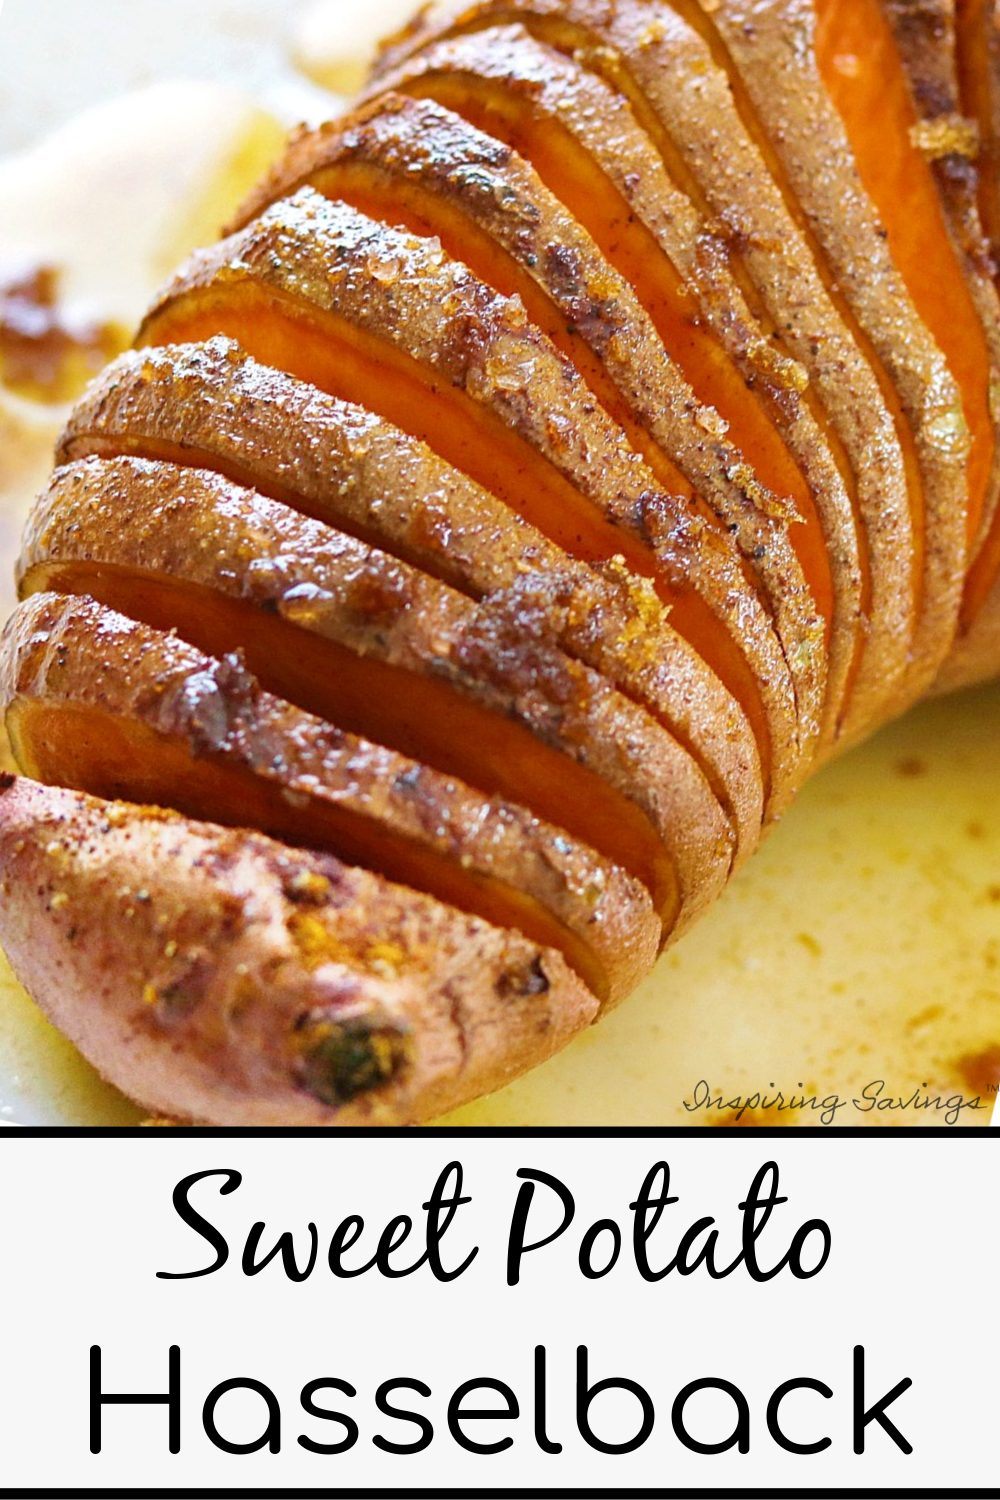 """Brown Butter Sweet Potato Hasselback on white plate. Image contains text overlay """"Sweet potato hasselback"""""""